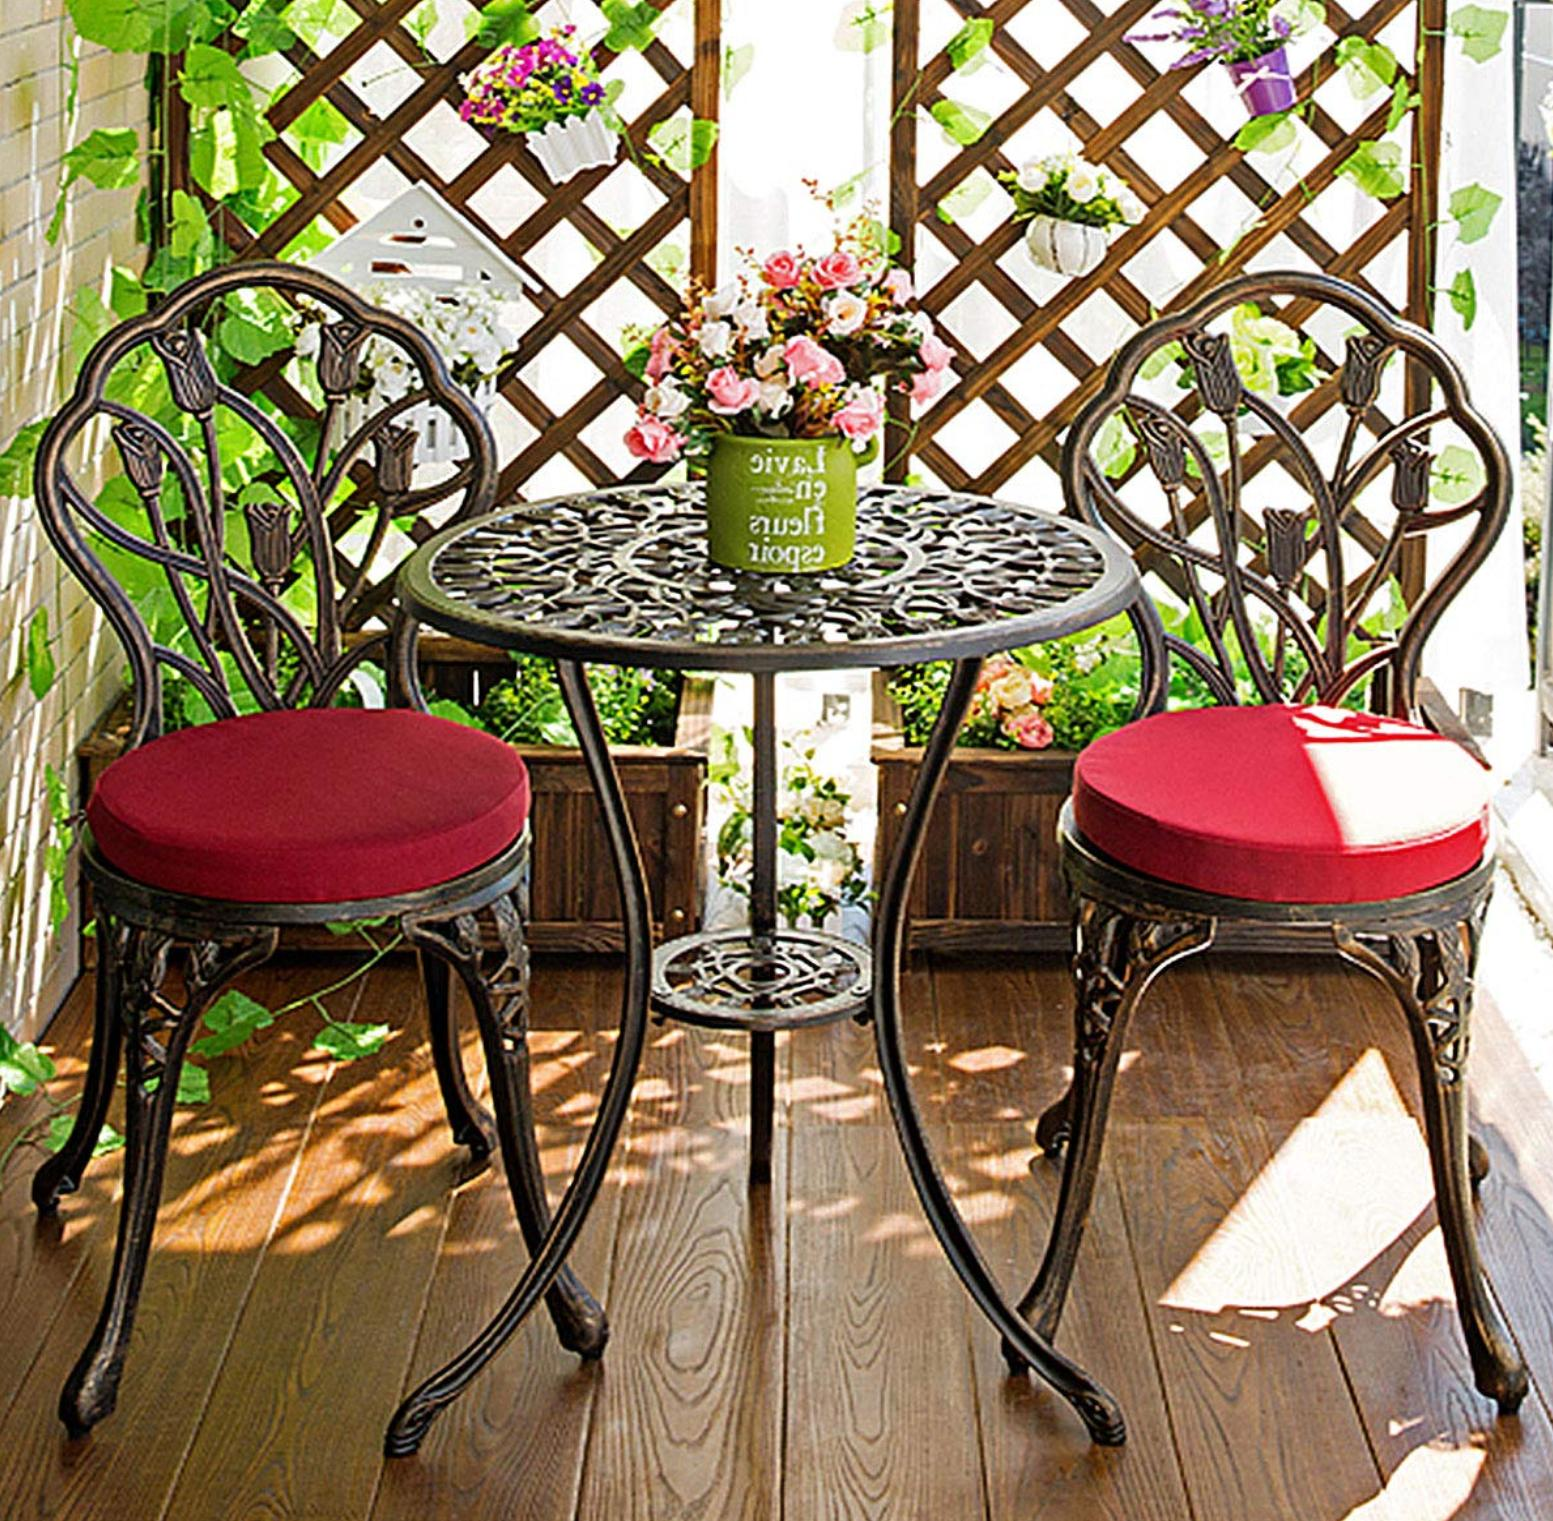 Outdoor Table and Chairs Bistro Garden Decor Hole